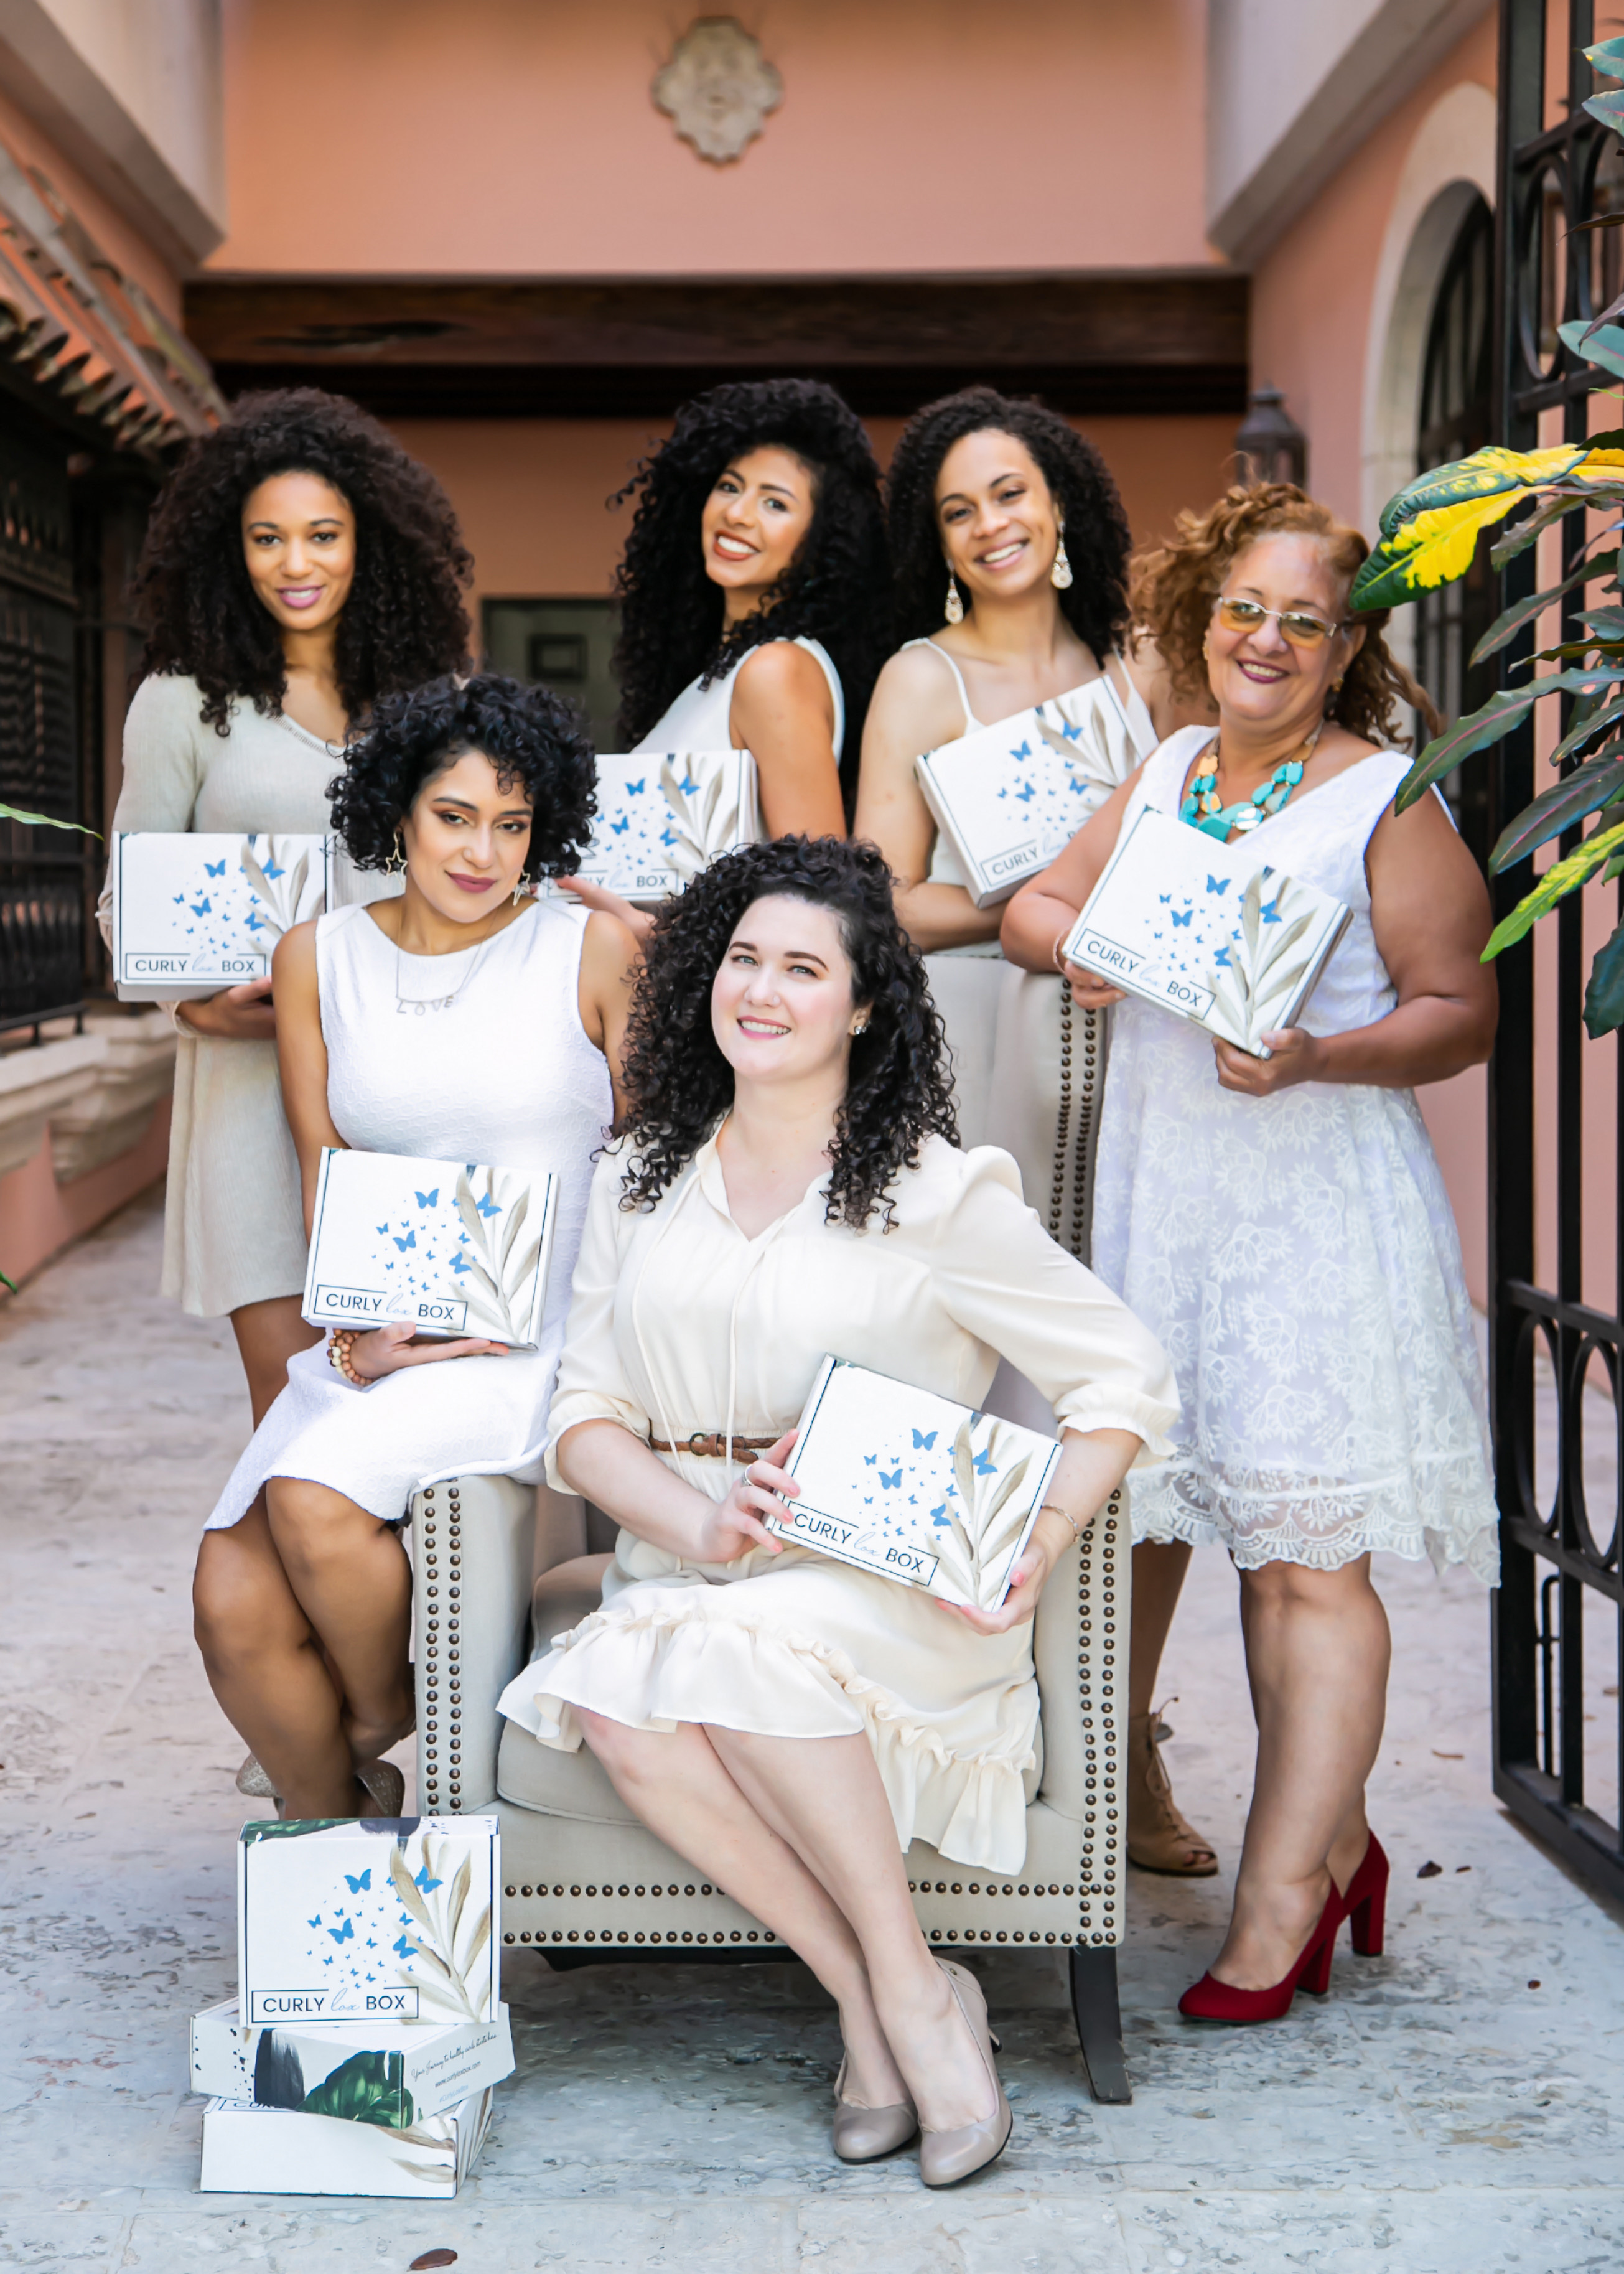 Meet Sumer Shaw, the Founder of CurlyLox Box and a young female entrepreneur in South Florida that promotes the idea of 'loving oneself' through her brand. She wants every woman to embrace their natural beauty and her monthly subscription box helps women with curls to achieve that gratification. She deeply comprehends the importance of accepting one's individuality thus she has established a remarkable service that connects these women with affordable exclusive products that enhance their curly experience.